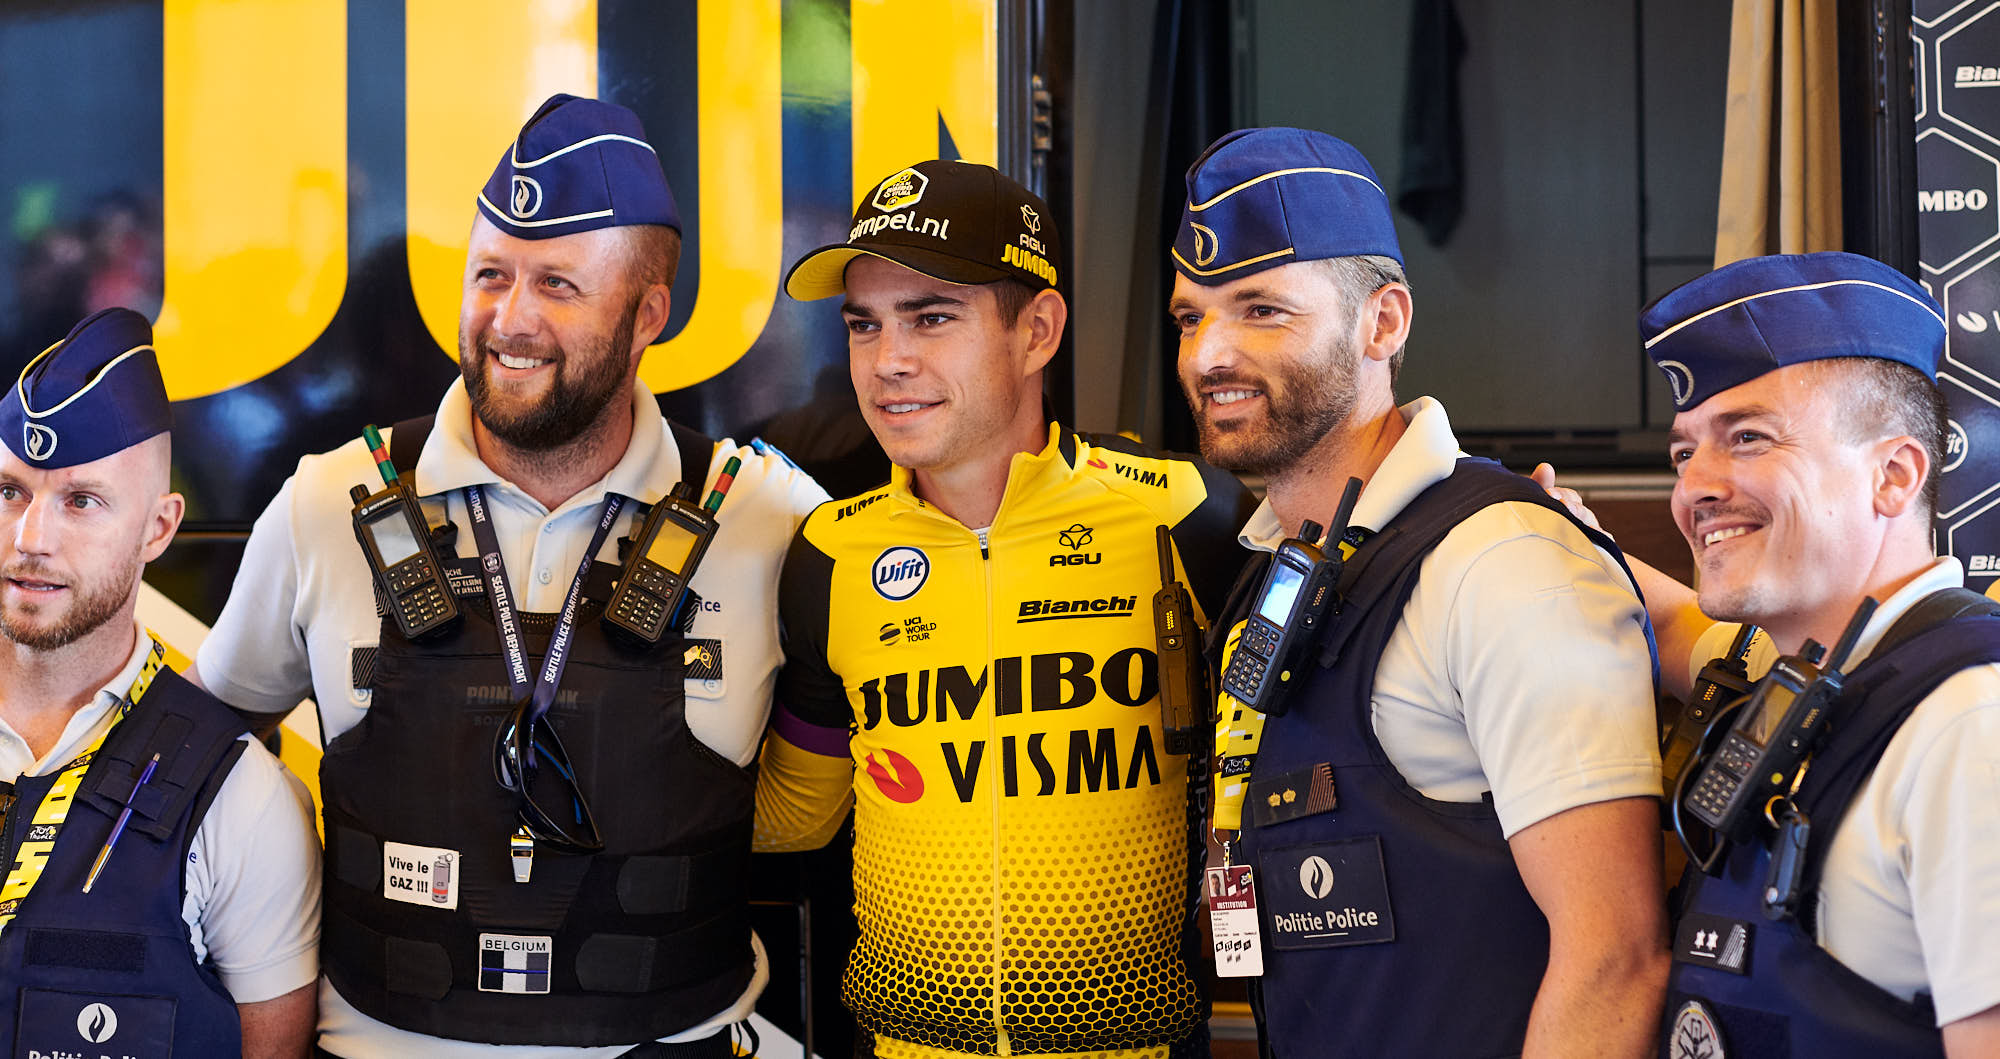 Wout van Aert with two Brussels police officers after the team time trial in the 2019 Tour de France